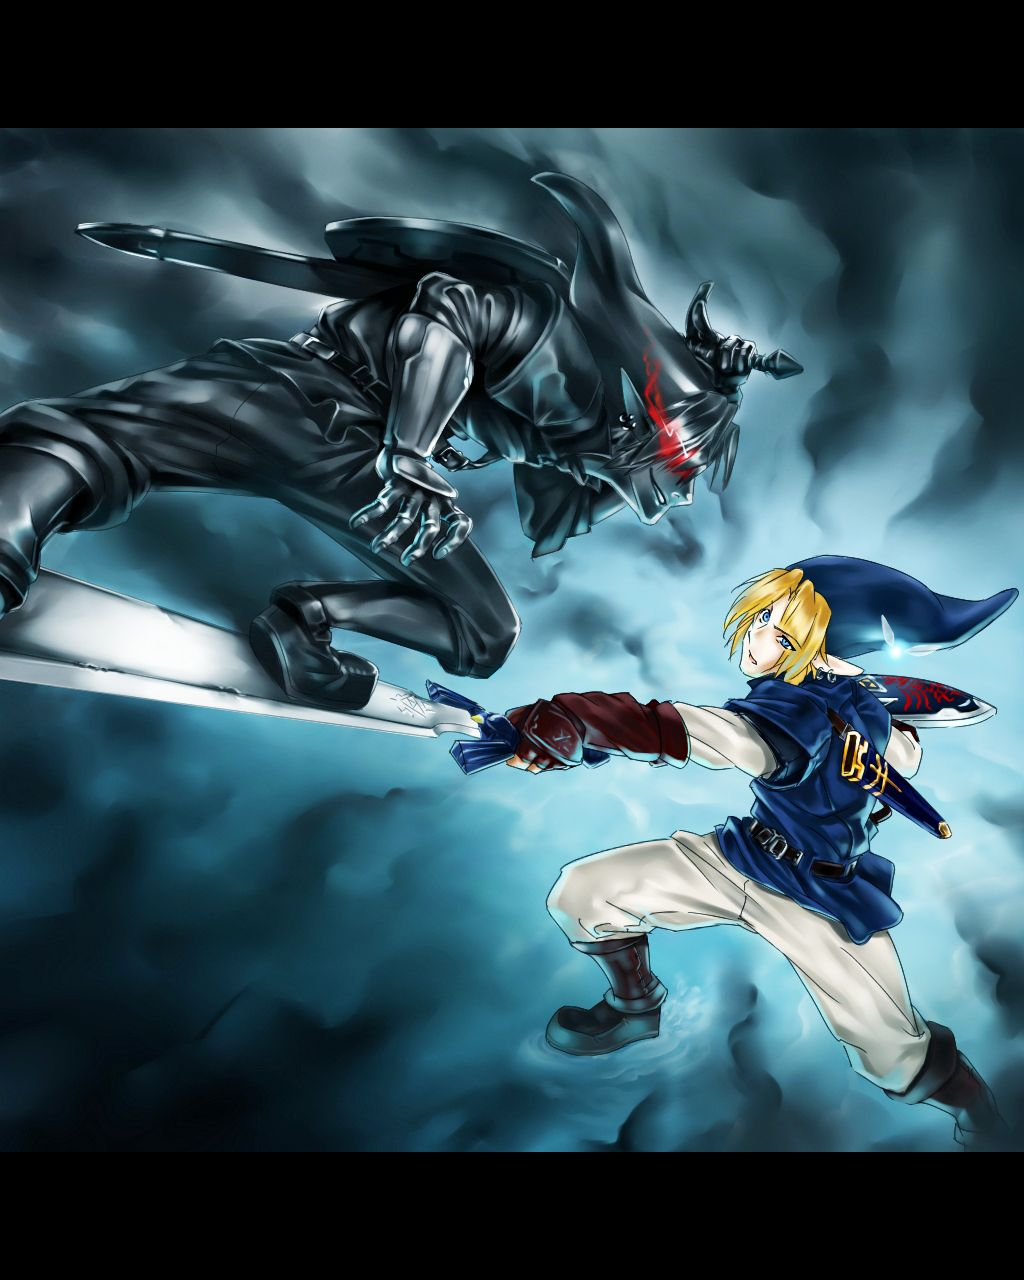 Link Vs Dark Link Animation